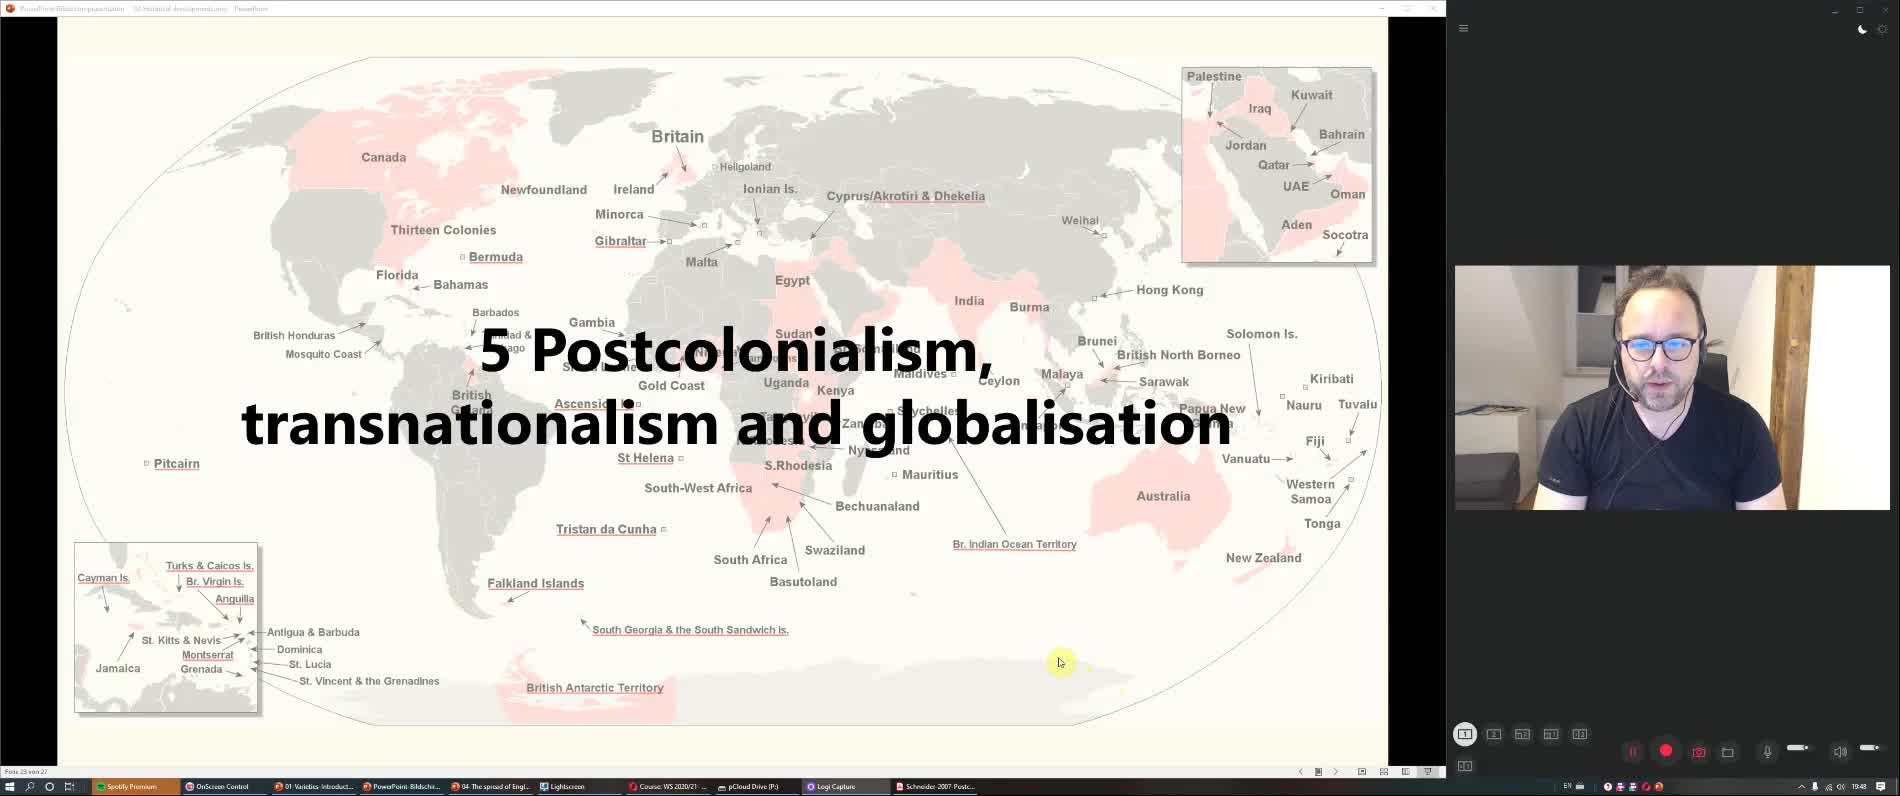 02-05-Postcolonialism, transnationalism and globalisation